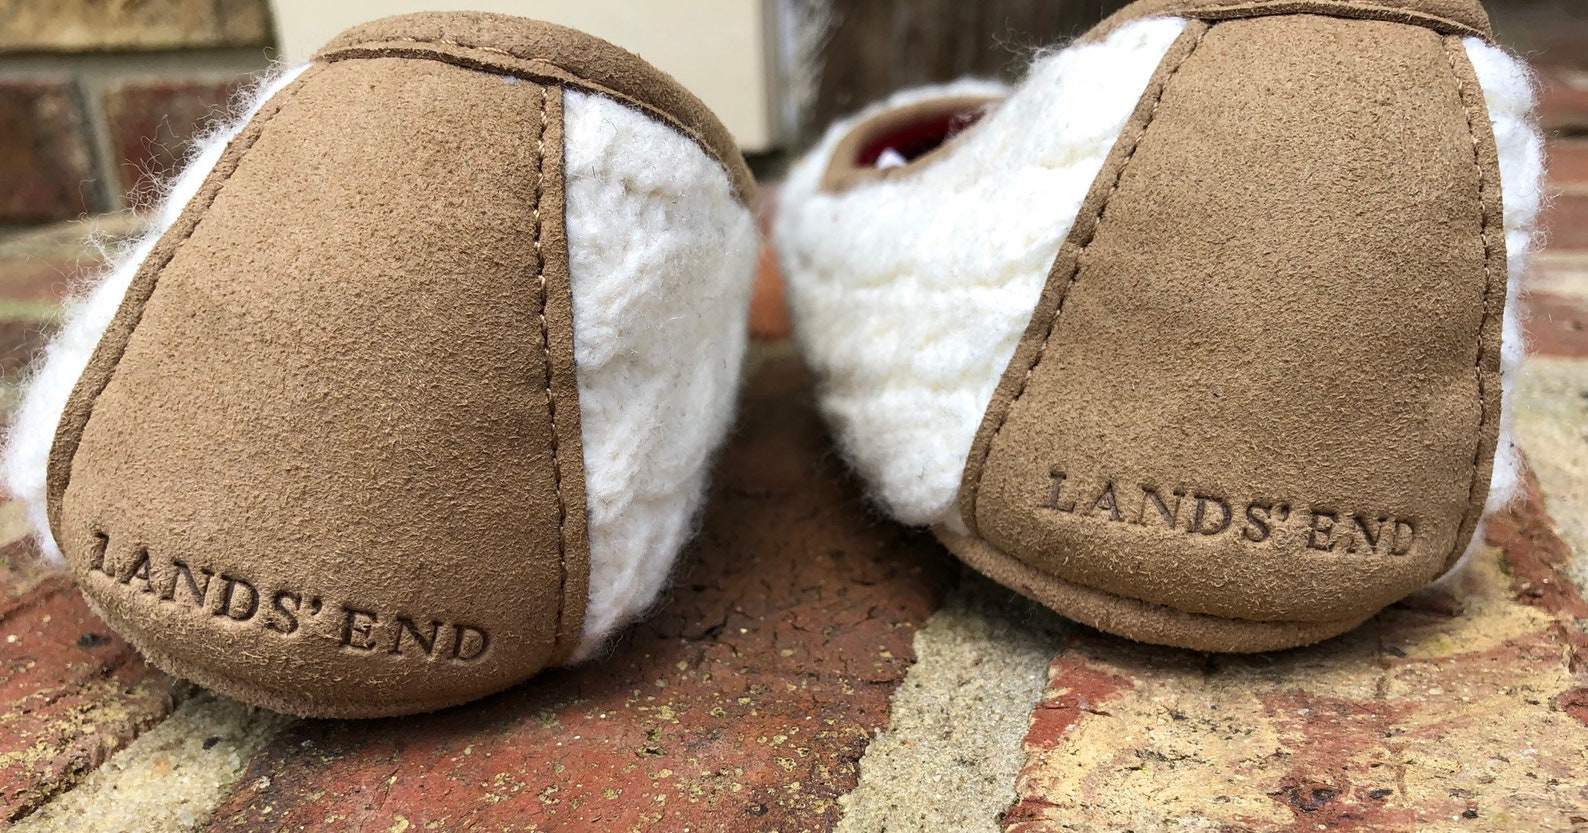 lands end women's ballet slippers medium white knit top slip resistant soles comfortable padded slippers excellent condition